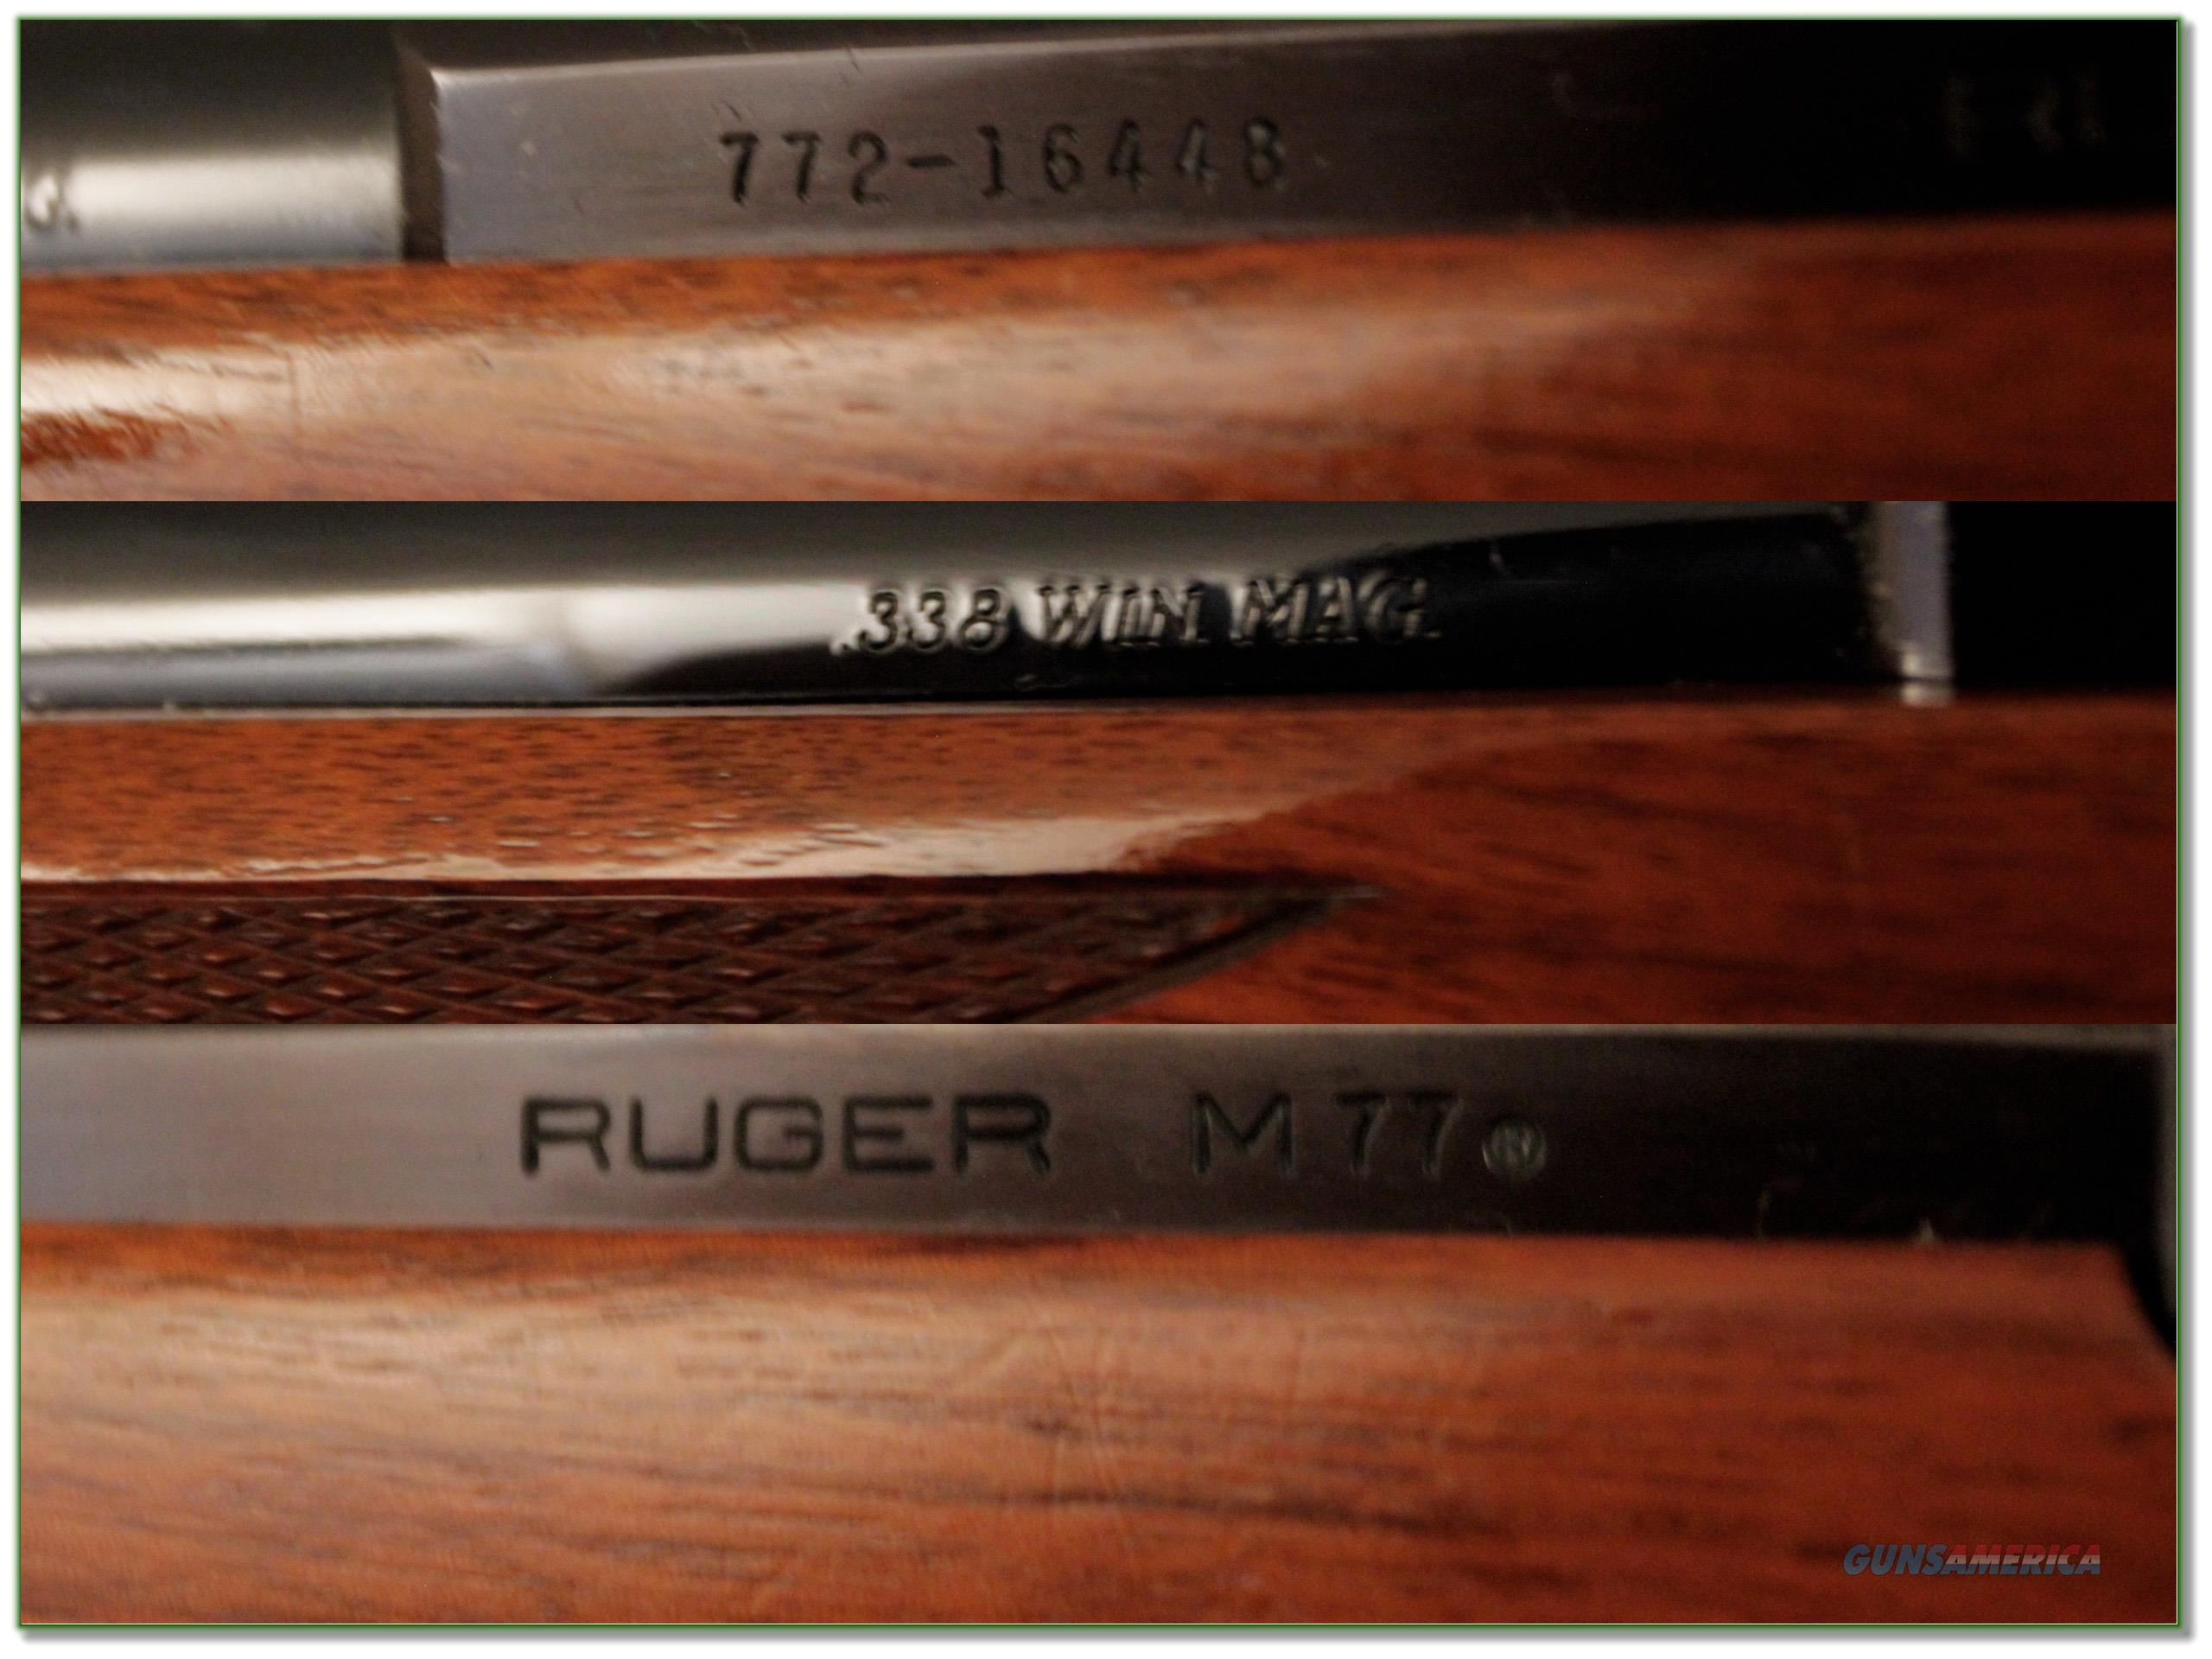 Magnum Insurance Near Me >> Ruger Model 77 Red Pad 338 Win Mag as new! for sale